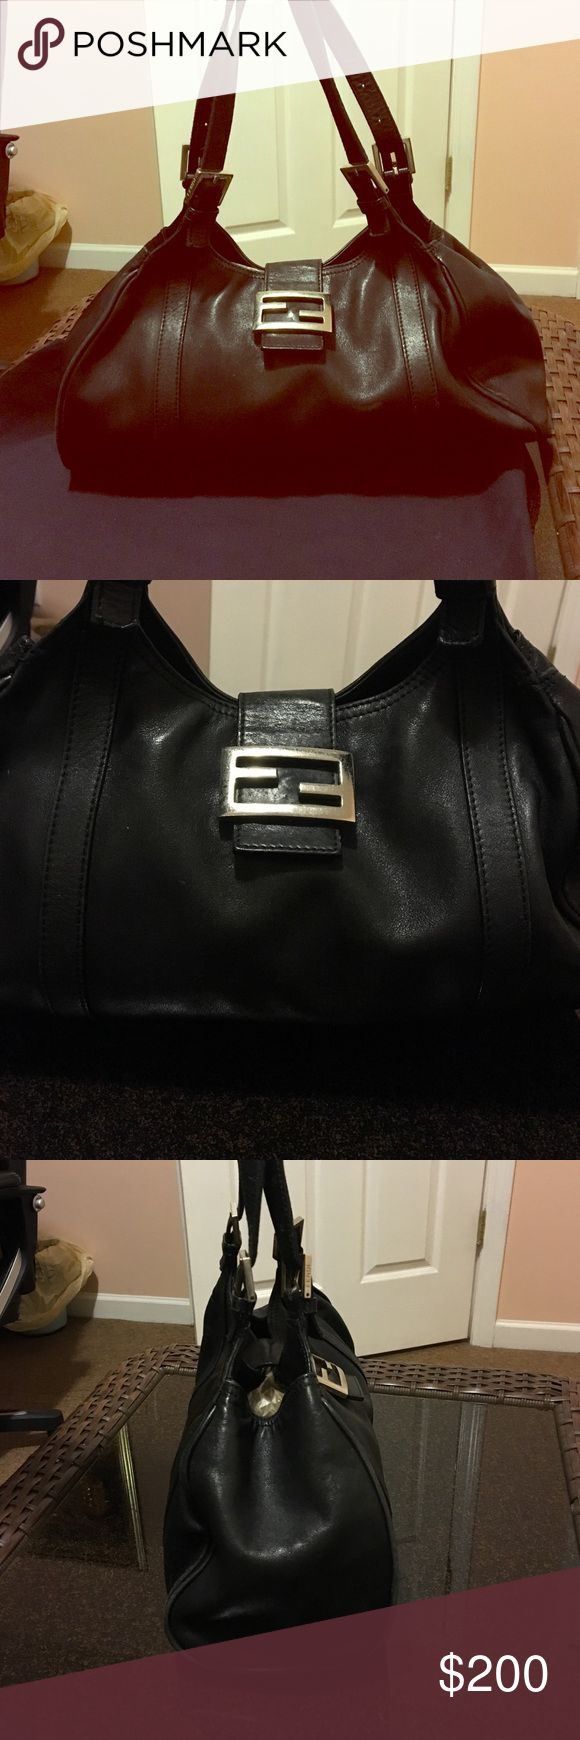 Fendi Hobo Shoulder Bag Authentic black leather fendi shoulder bag in good condition. Beautiful soft leather with a silver buckle. Fendi Bags Shoulder Bags